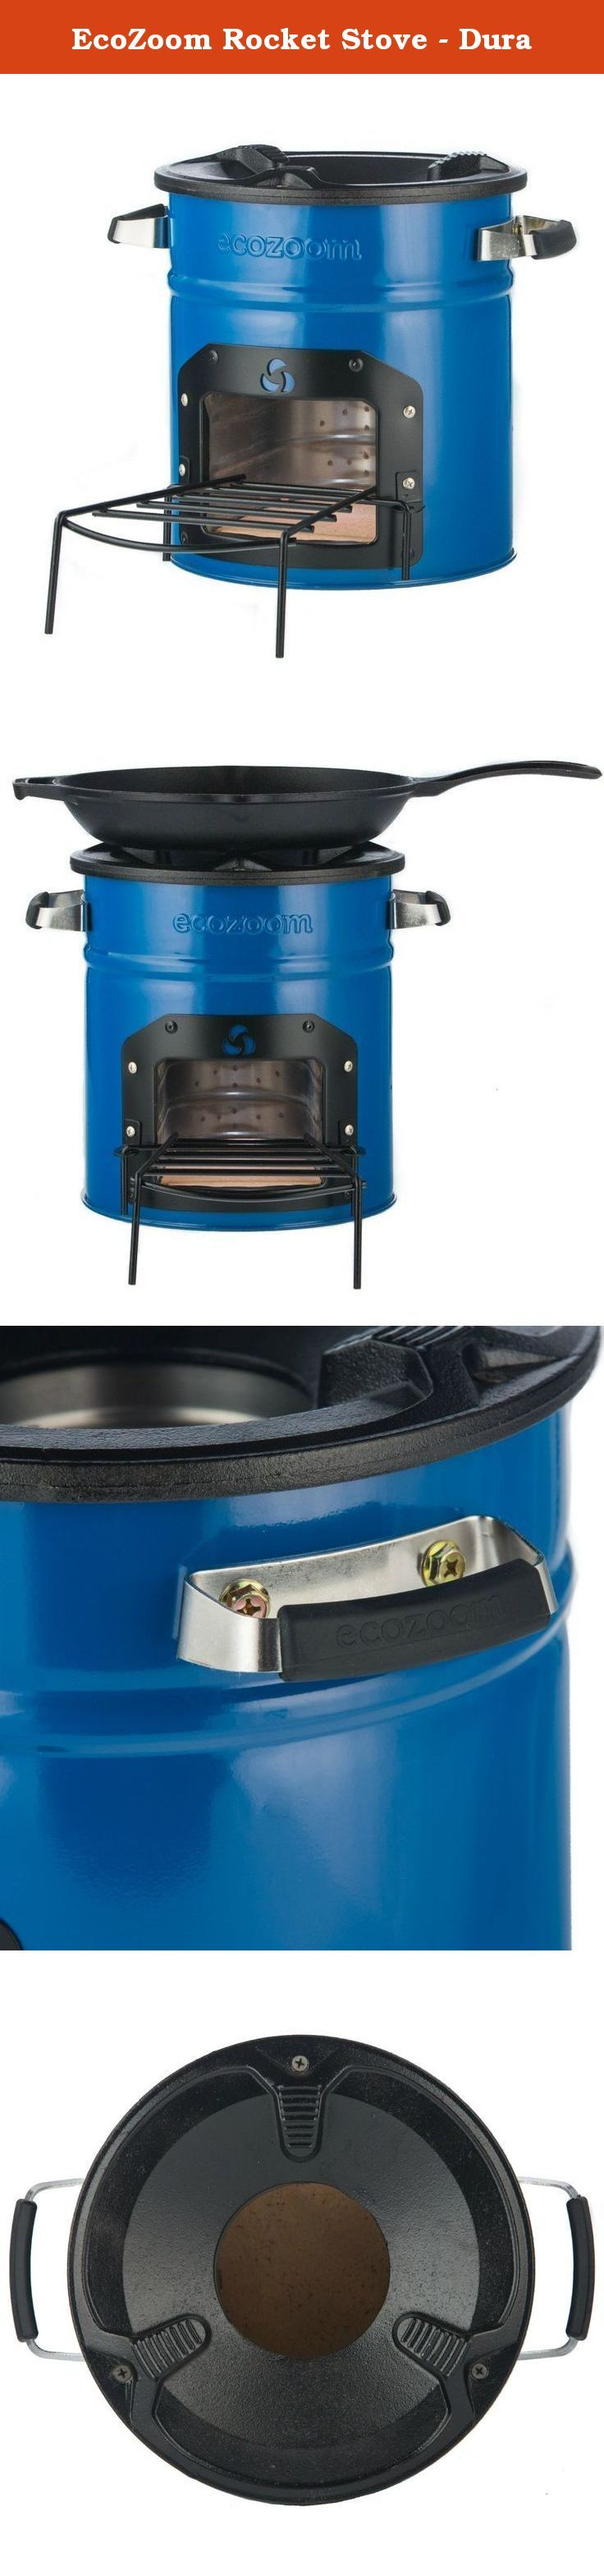 EcoZoom Rocket Stove - Dura. EcoZoom's Dura rocket stove burns wood and other dry solid biomass. The Dura is great for camping and has proven its durability in developing countries where the stove is used daily. It features an abrasion resistant and durable ceramic combustion chamber with a 10 cm in diameter vertical section that forces the gases to mix with the flame, decreasing harmful emissions. The Dura adds a refractory metal liner to the inside of the combustion chamber that…